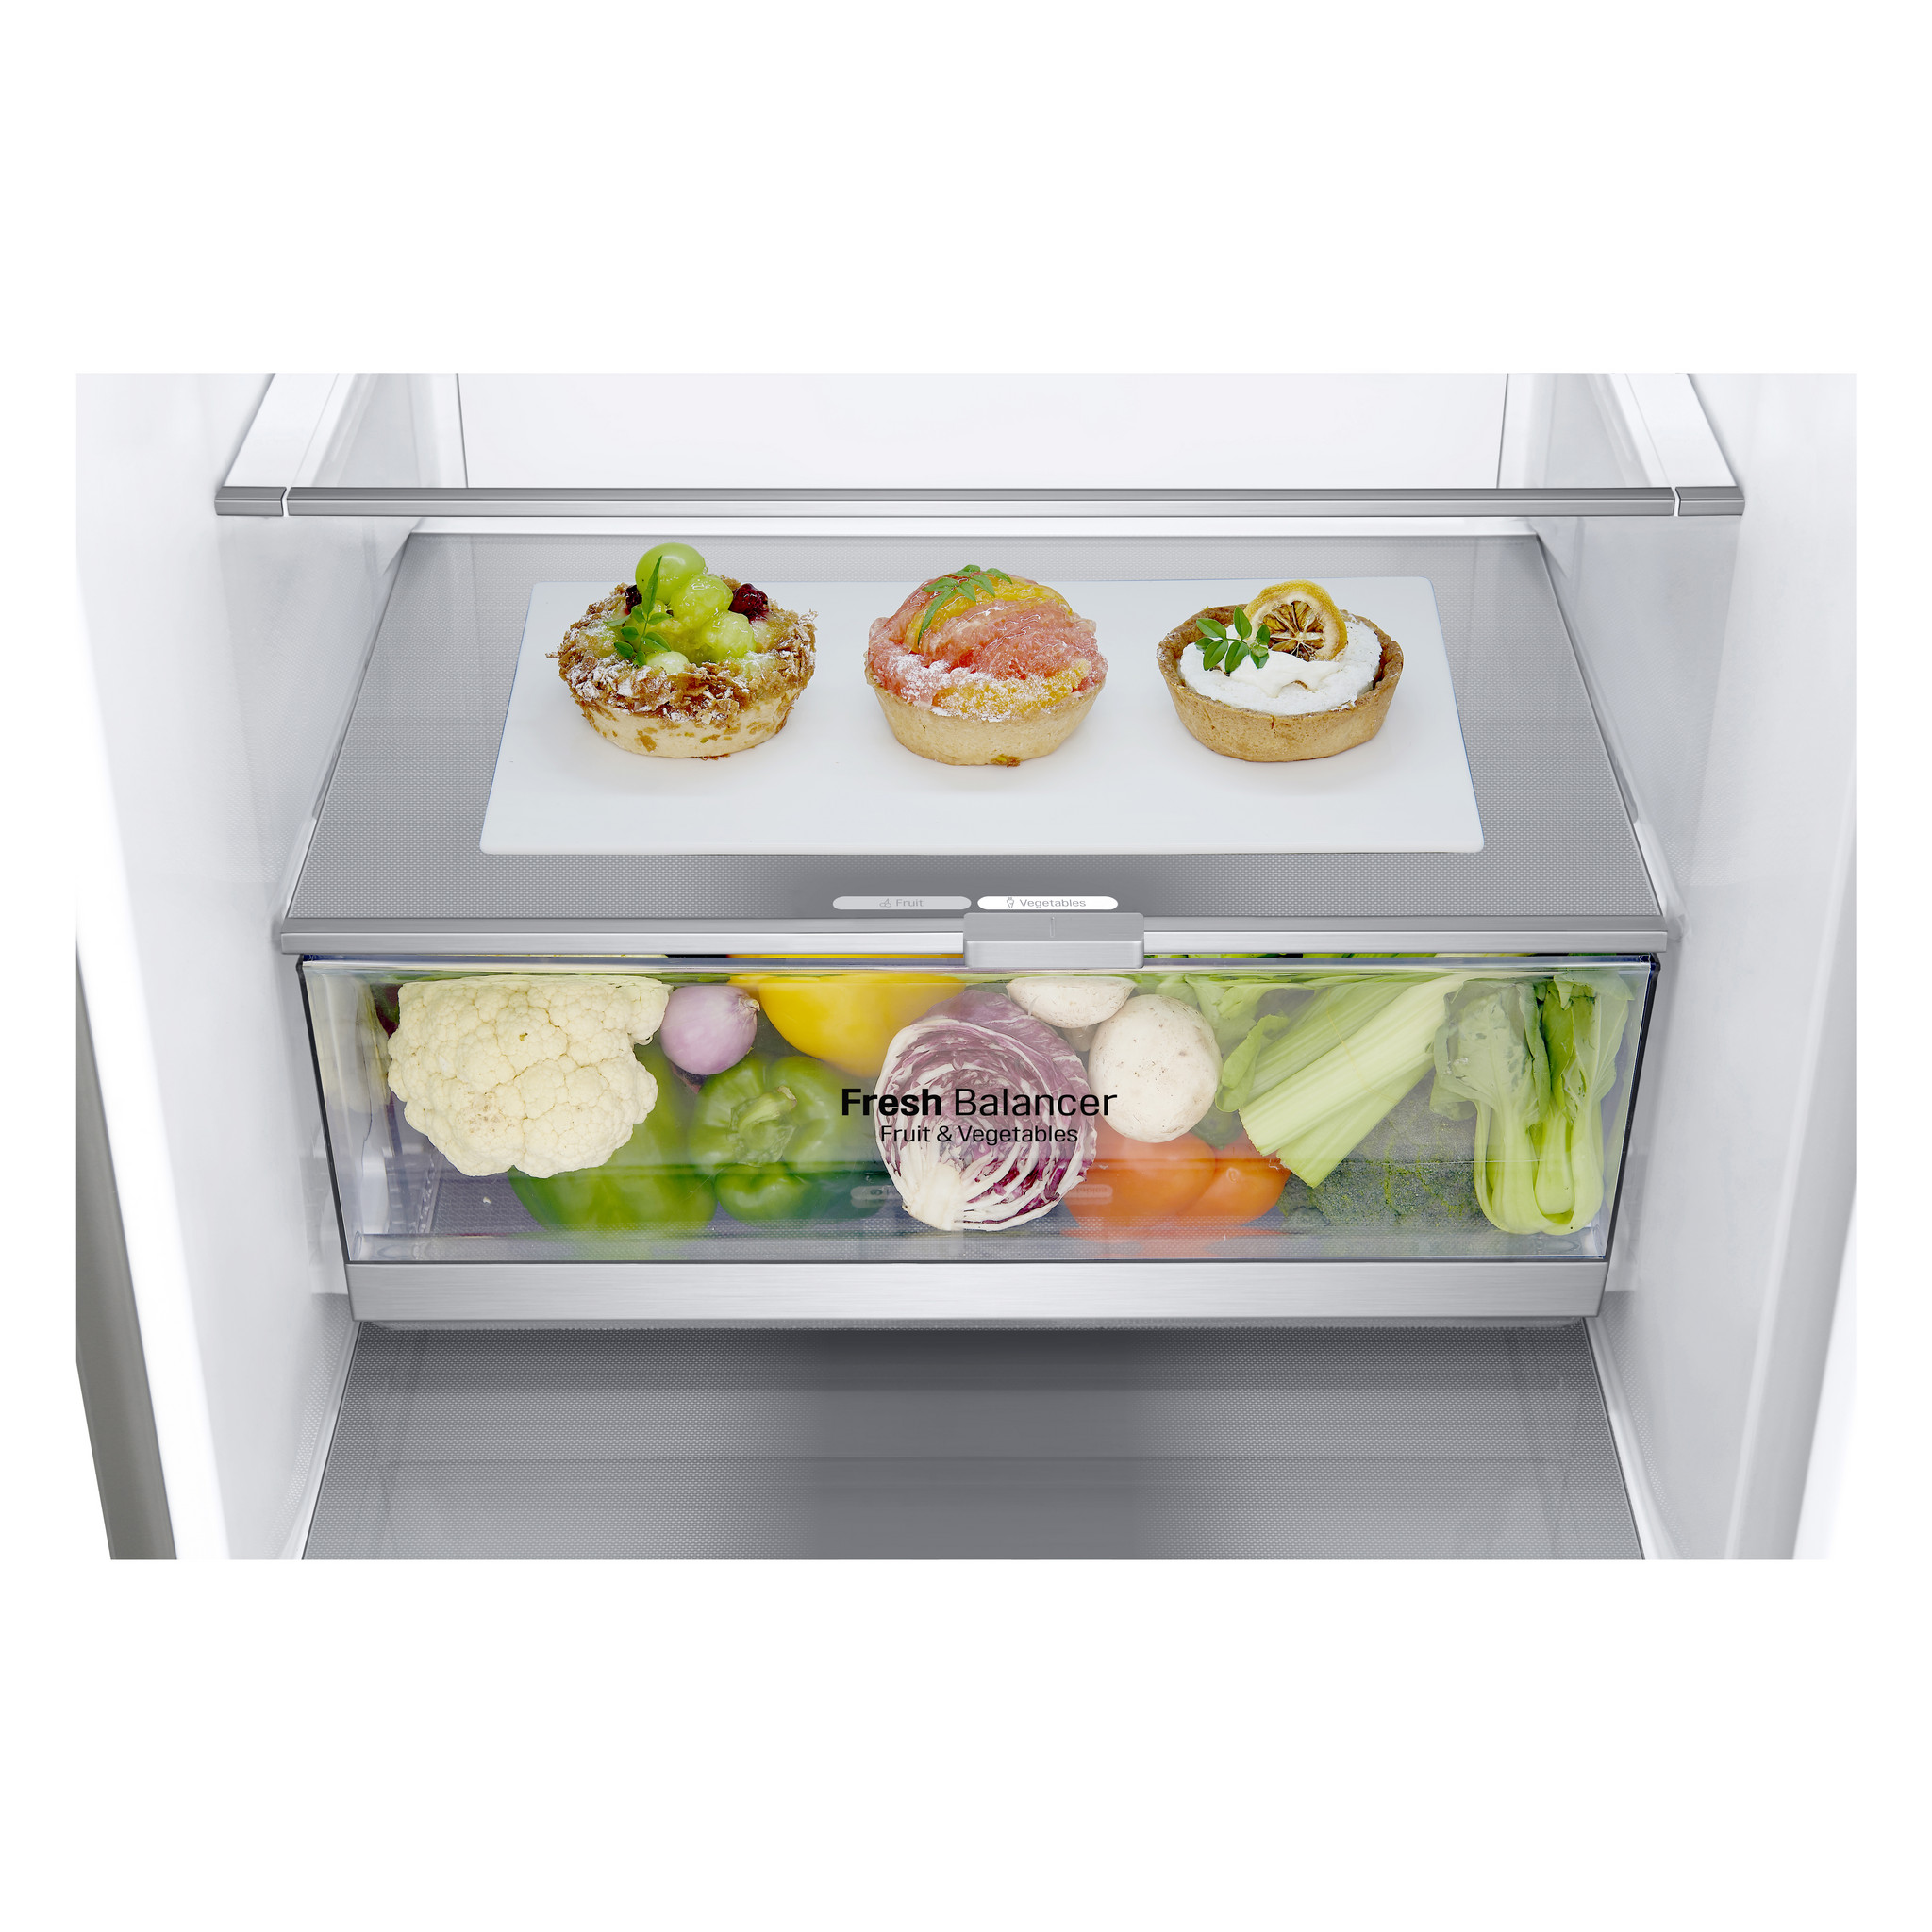 1_vplus_203_extra_pocket_metaltouch_sts_TopDrawer_Vegetables_Food.jpg